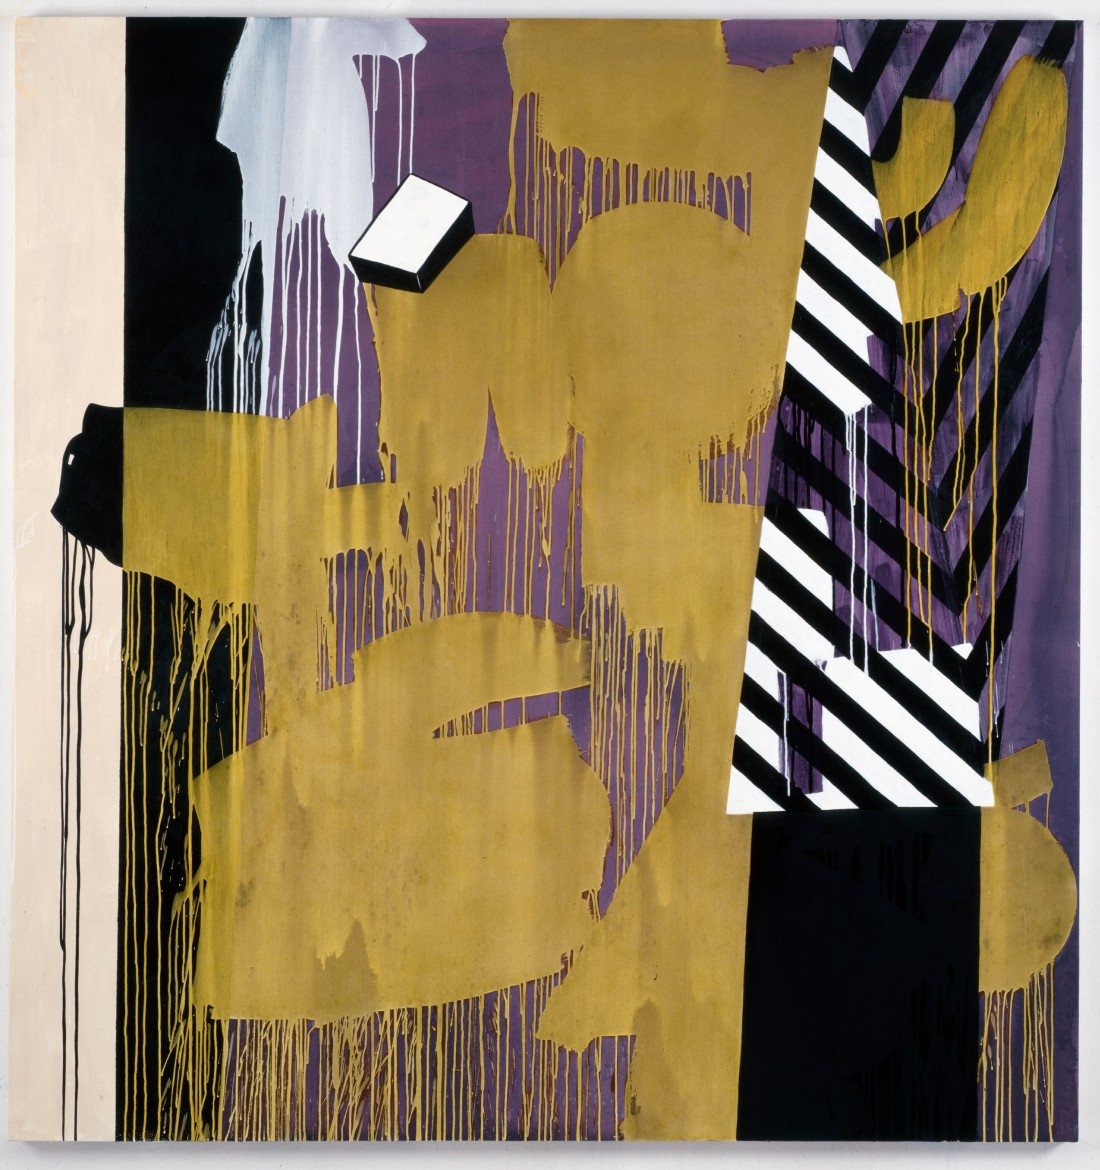 Charline von Heyl, It's Vot's Behind Me That I Am (Krazy Kat), 2010.